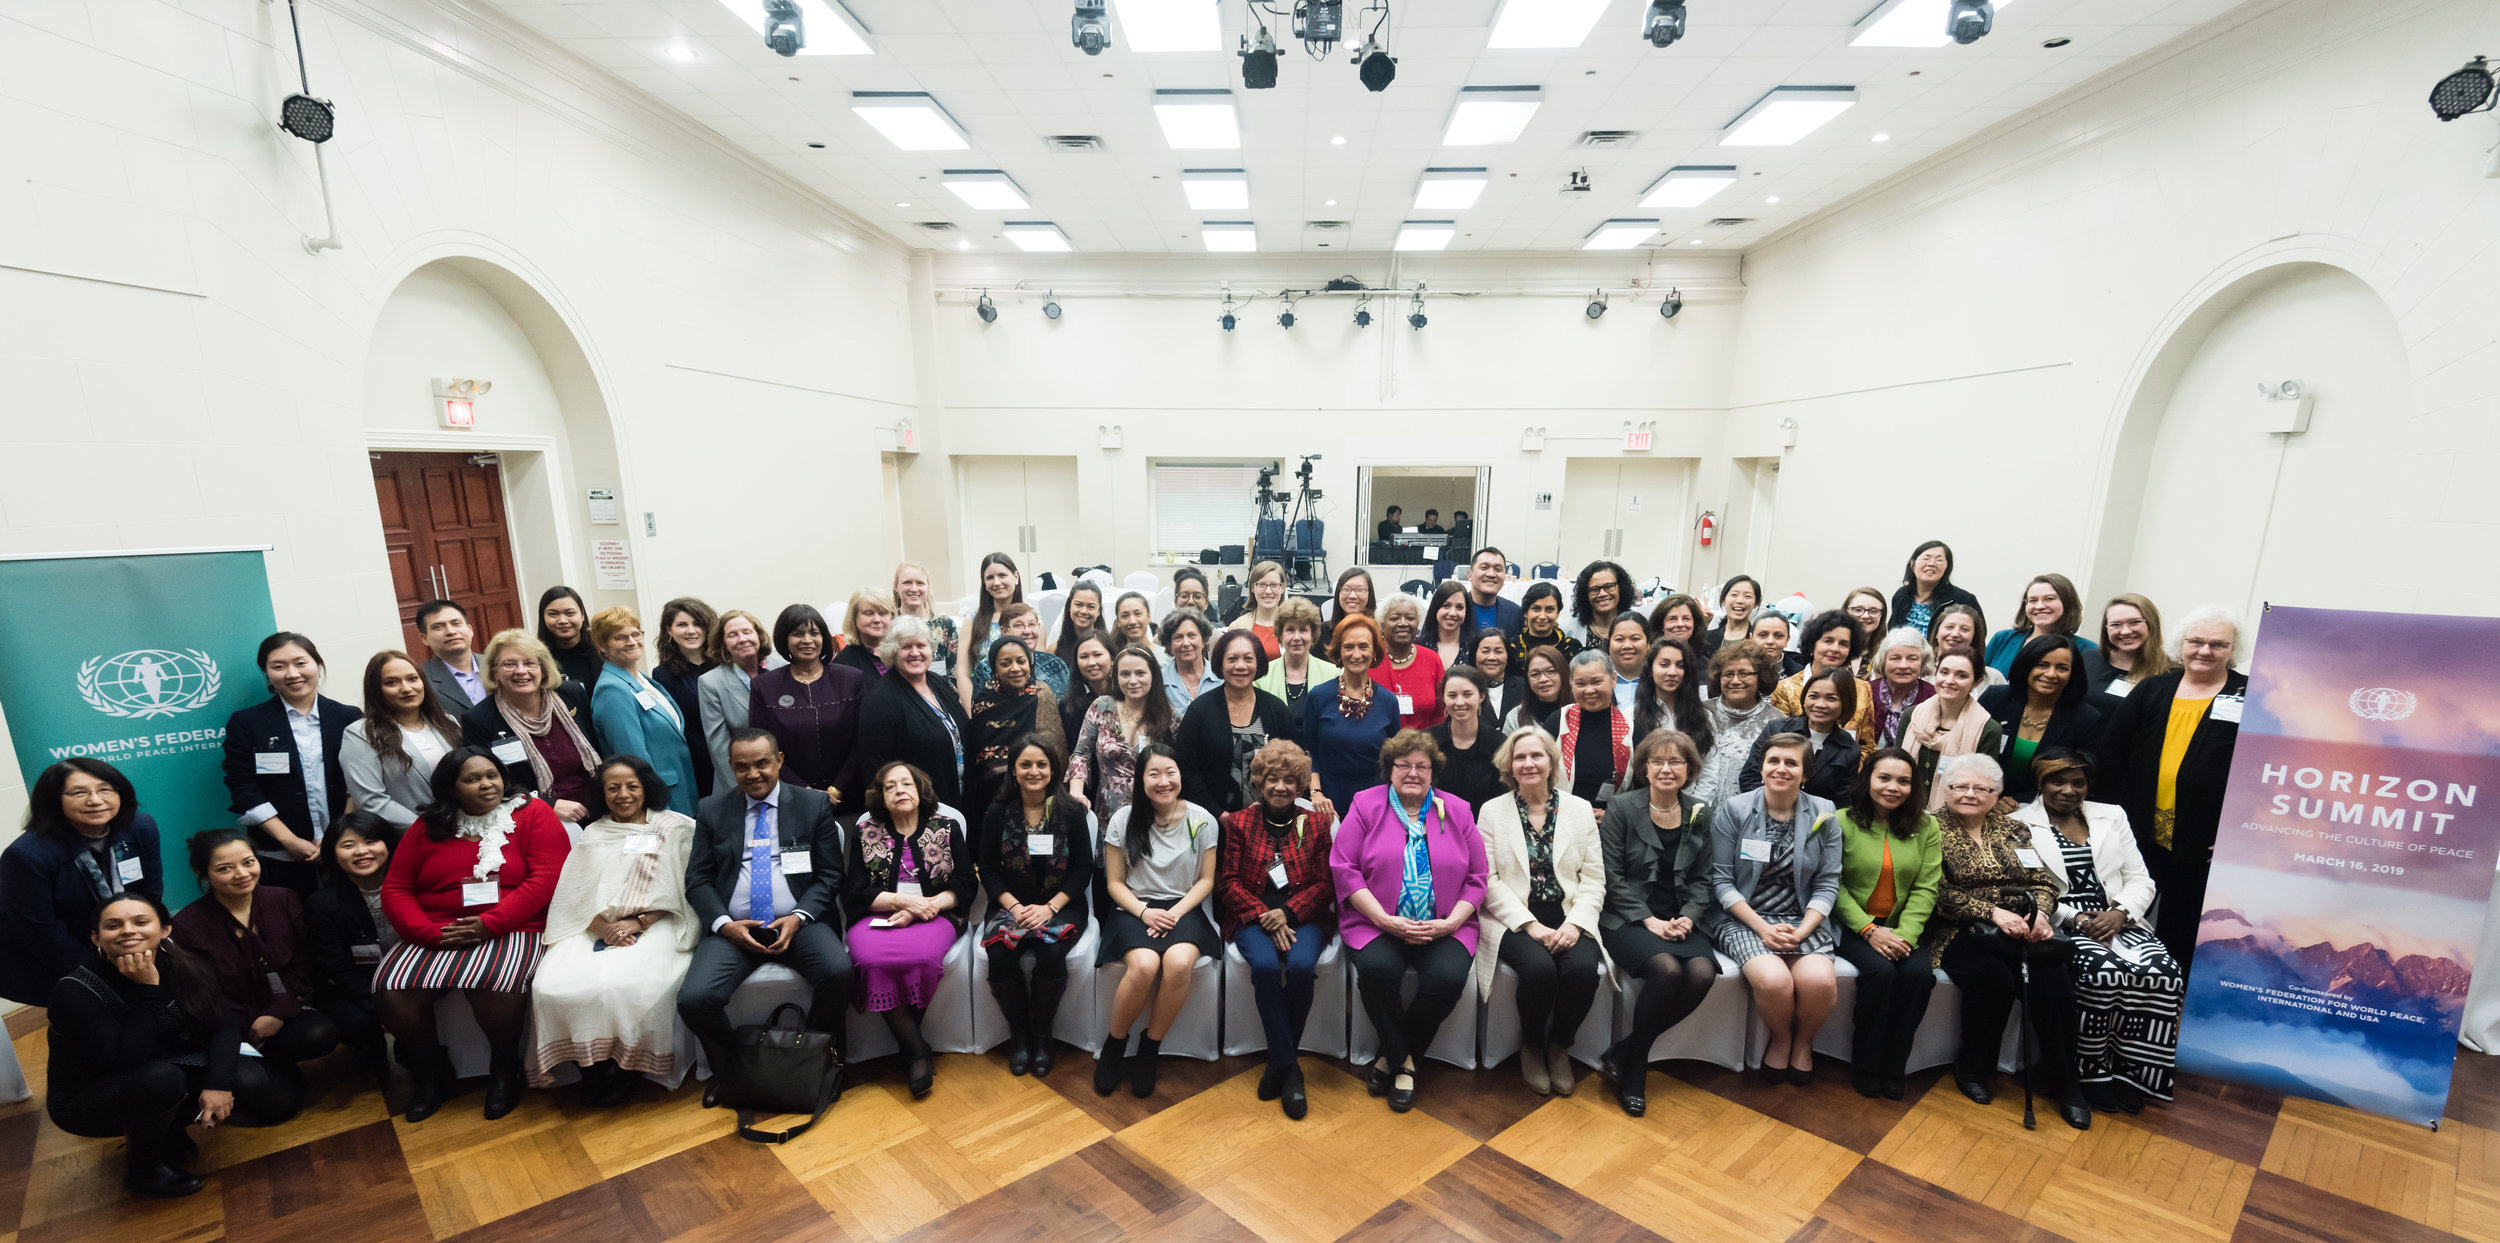 WFWPI and WFWP, USA Hold Annual Intergenerational Gathering in New York